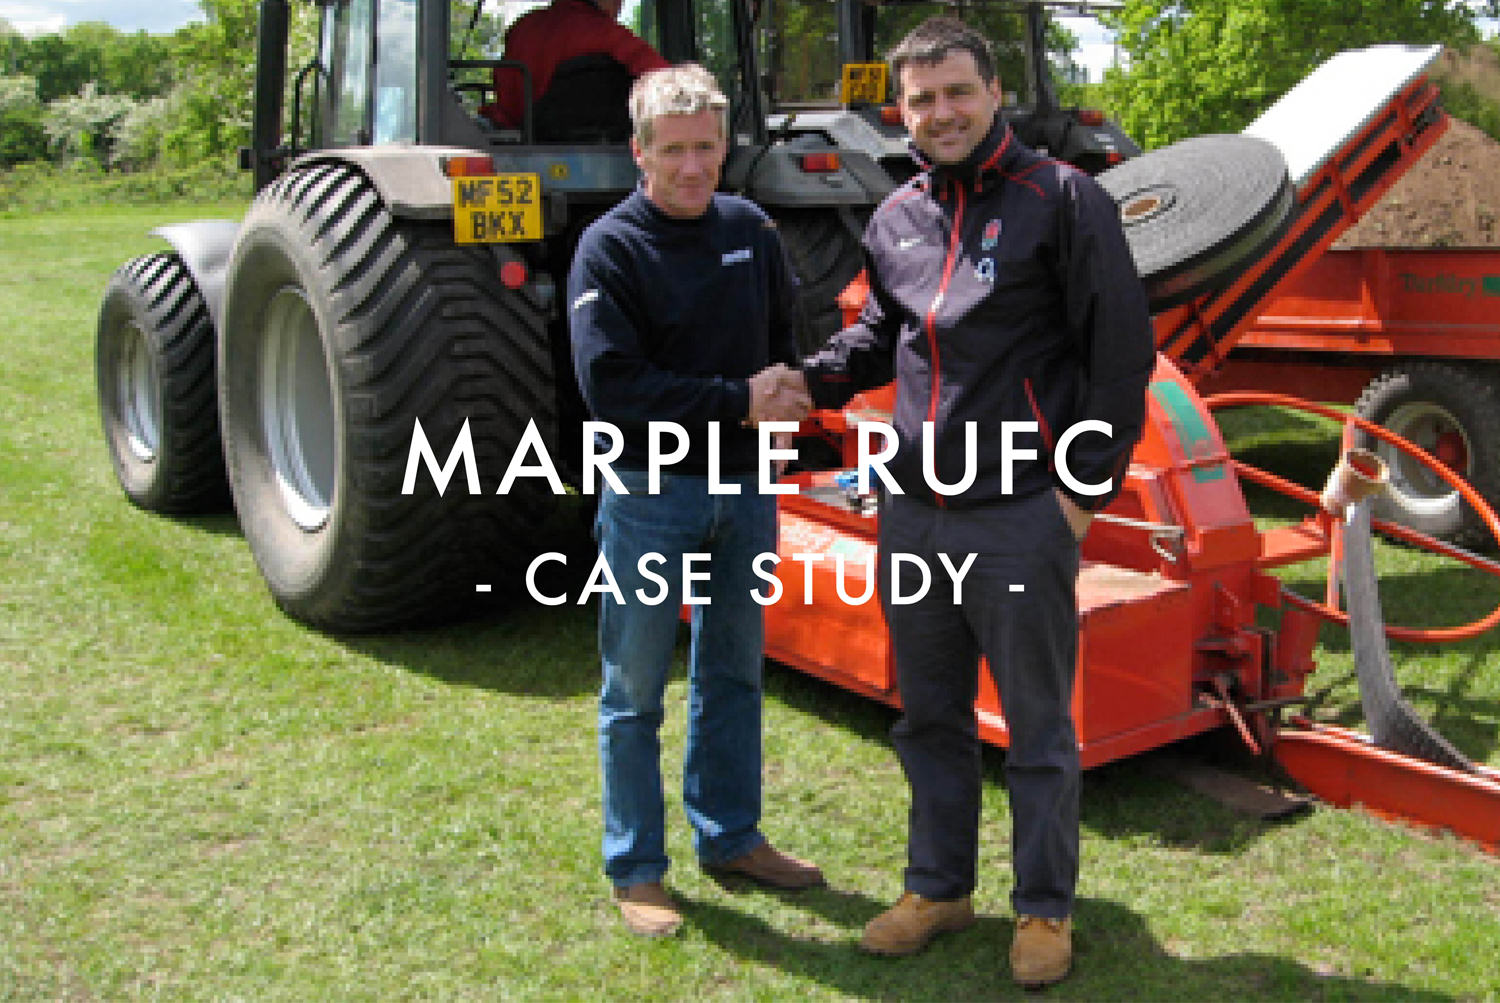 Marple RUFC Rugby Pitch Drainage Case Study